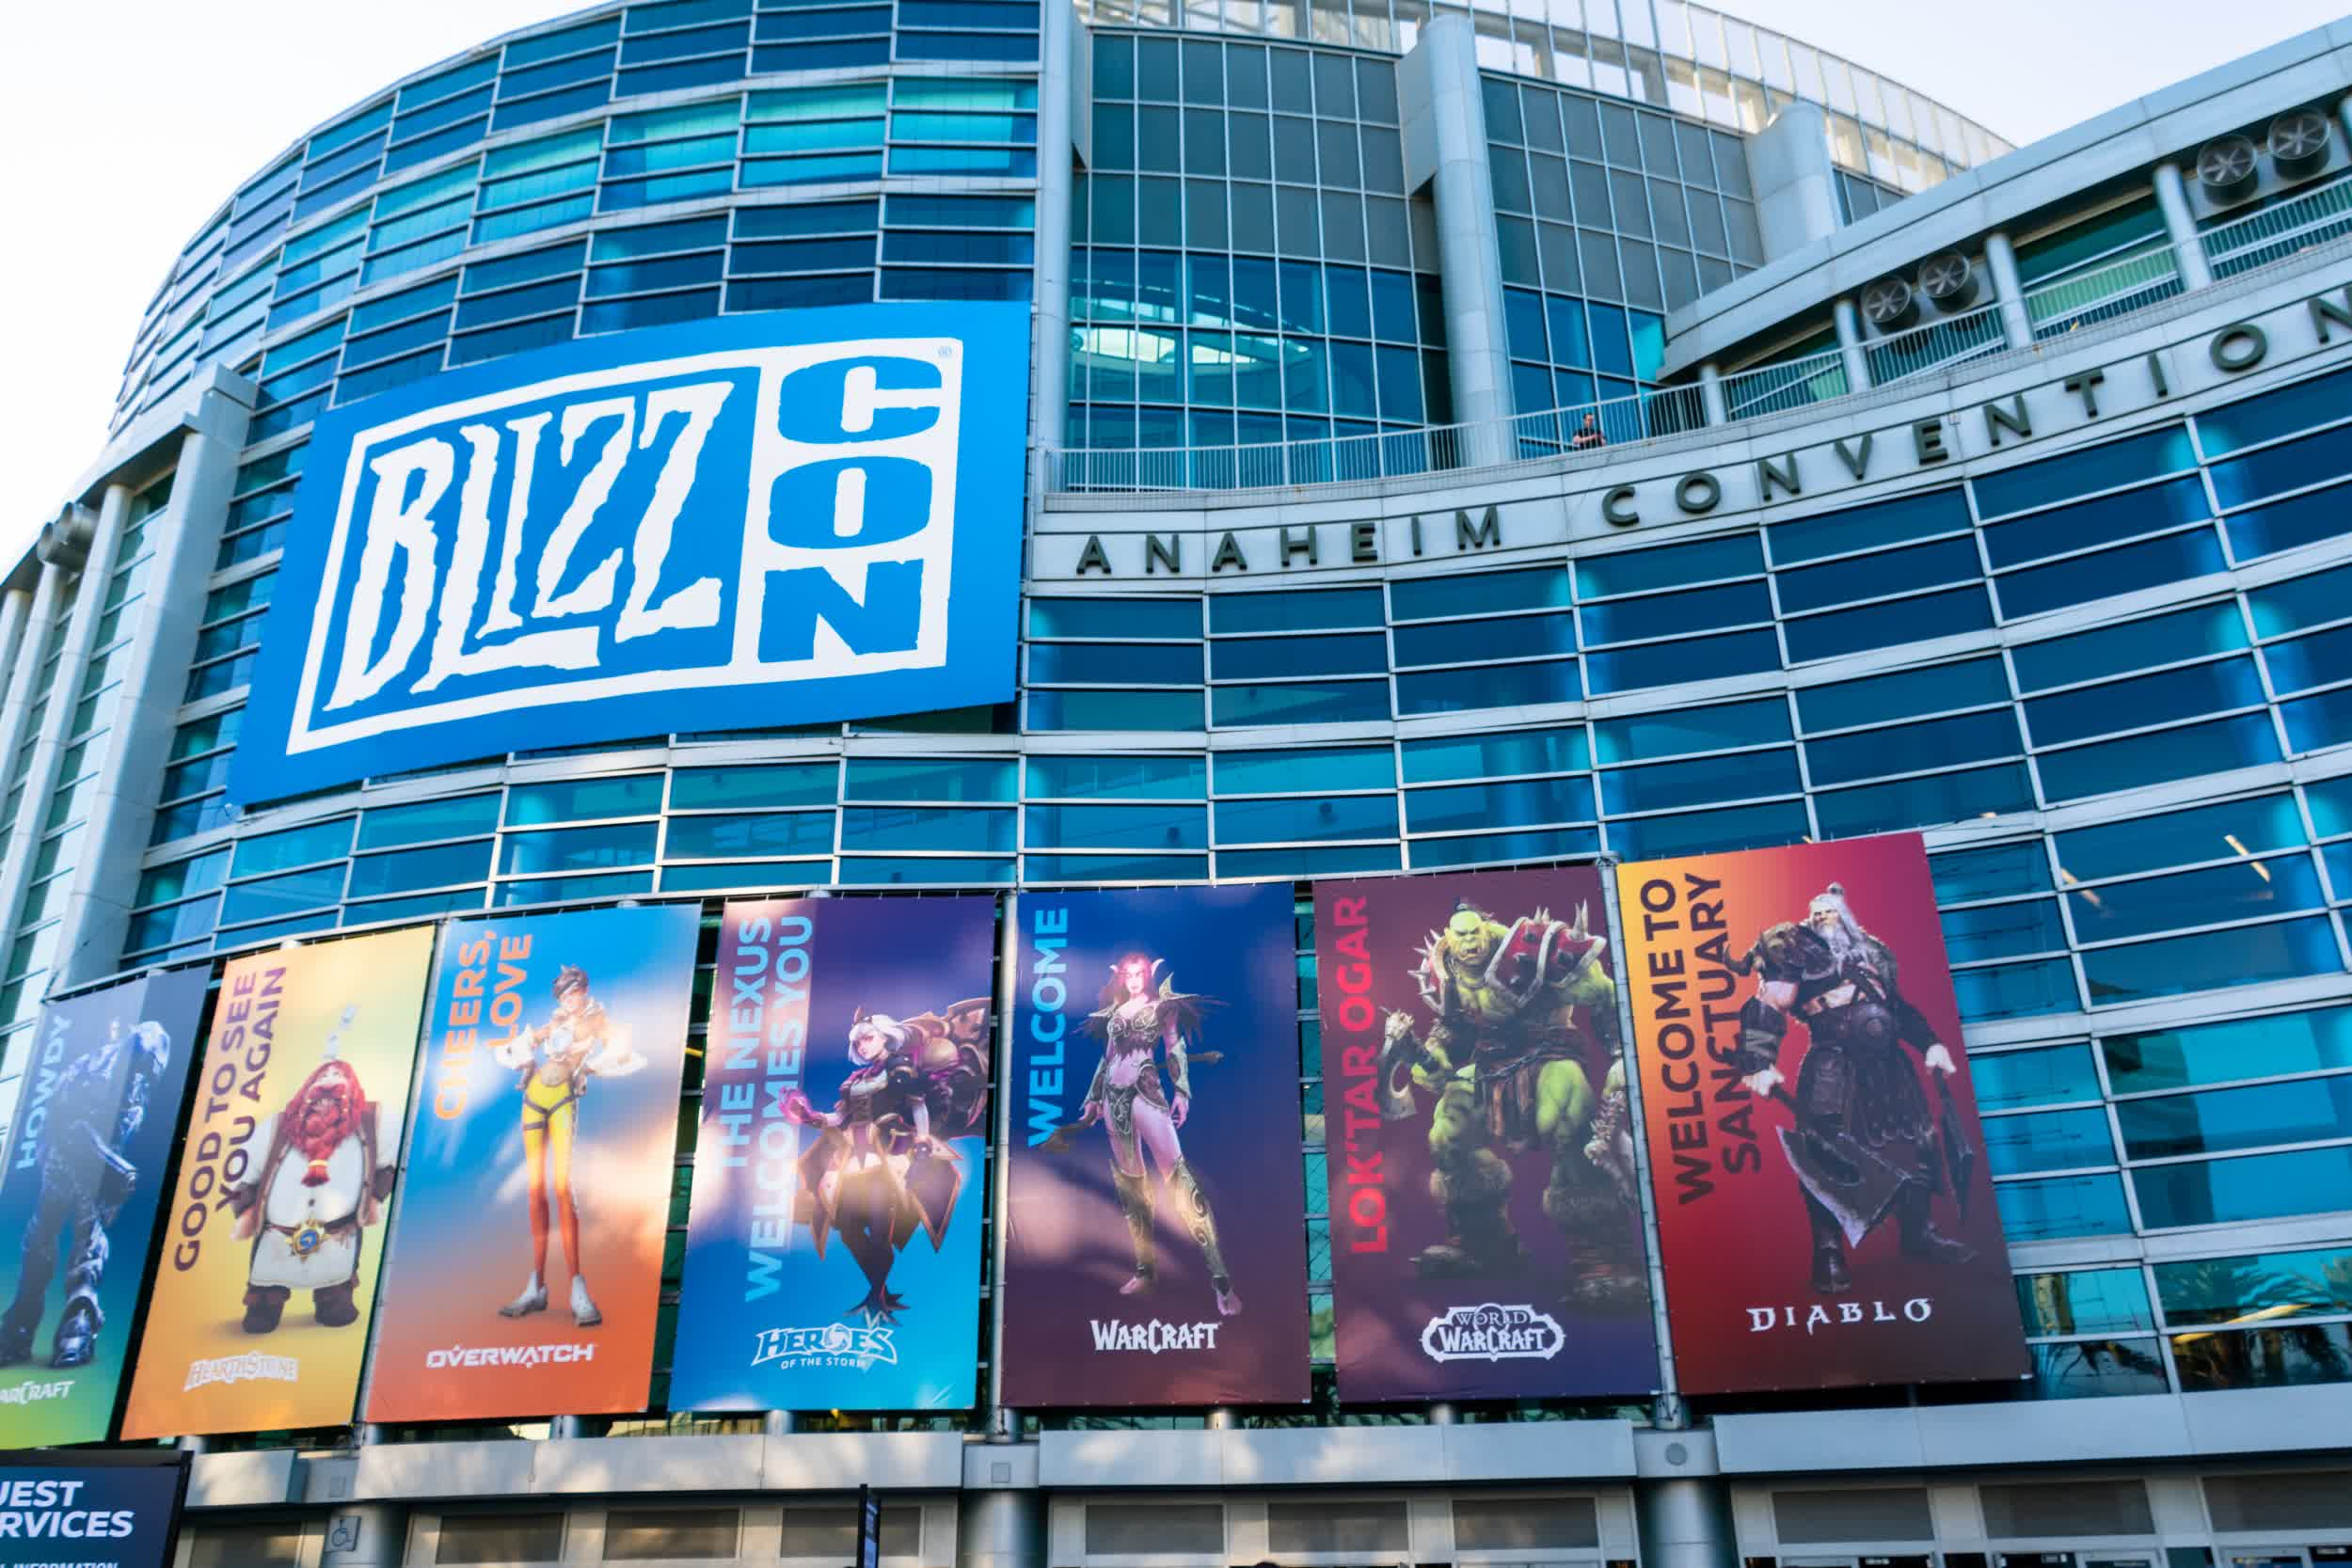 BlizzCon gets rescheduled as online-only event in February 2021